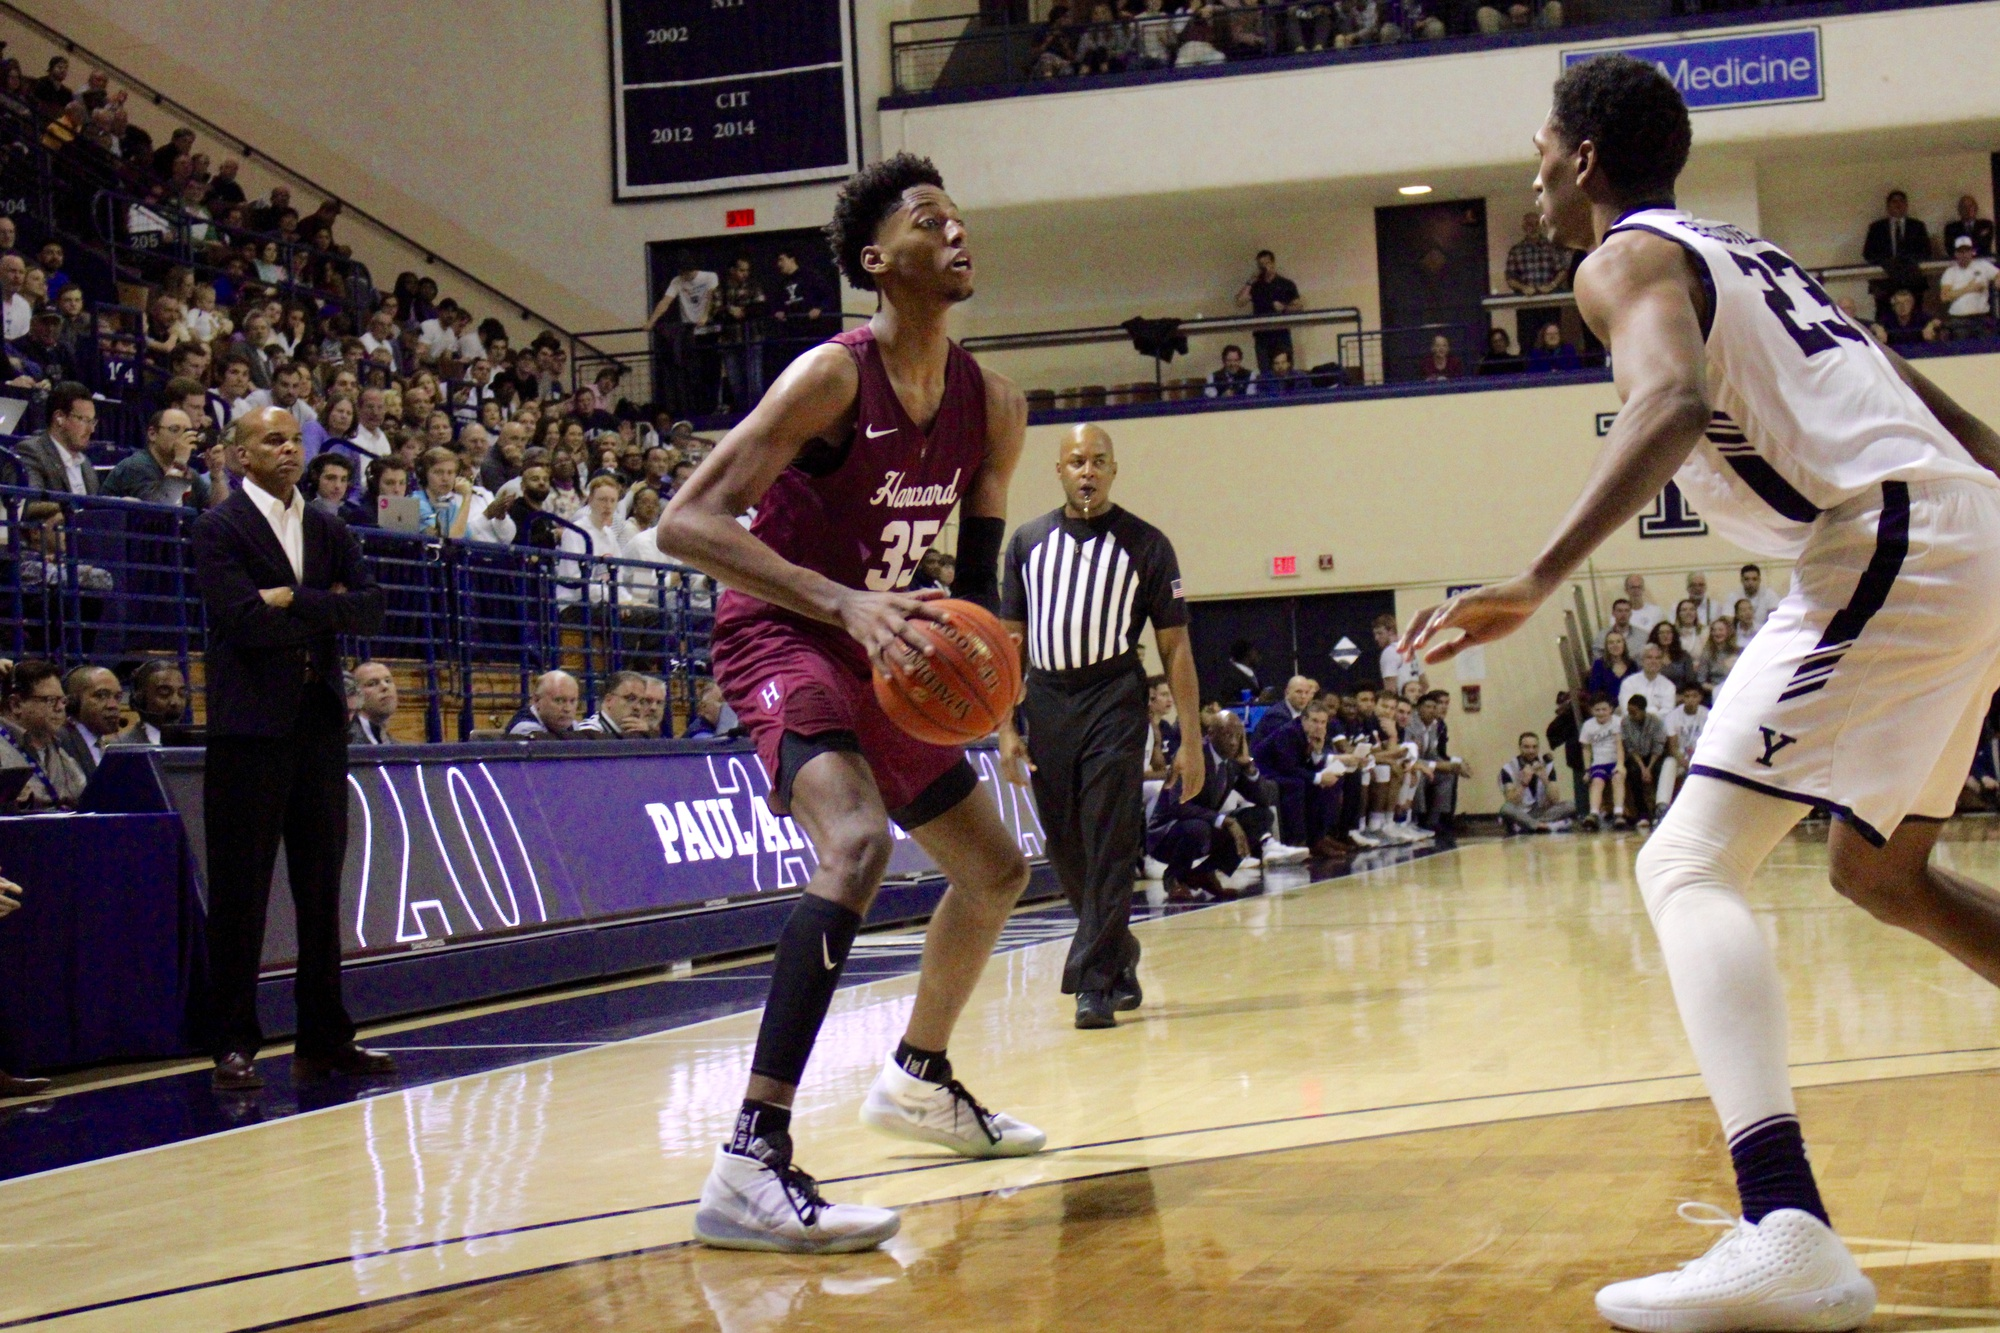 Senior forward Rob Baker led the team in scoring against Brown with 18 points.